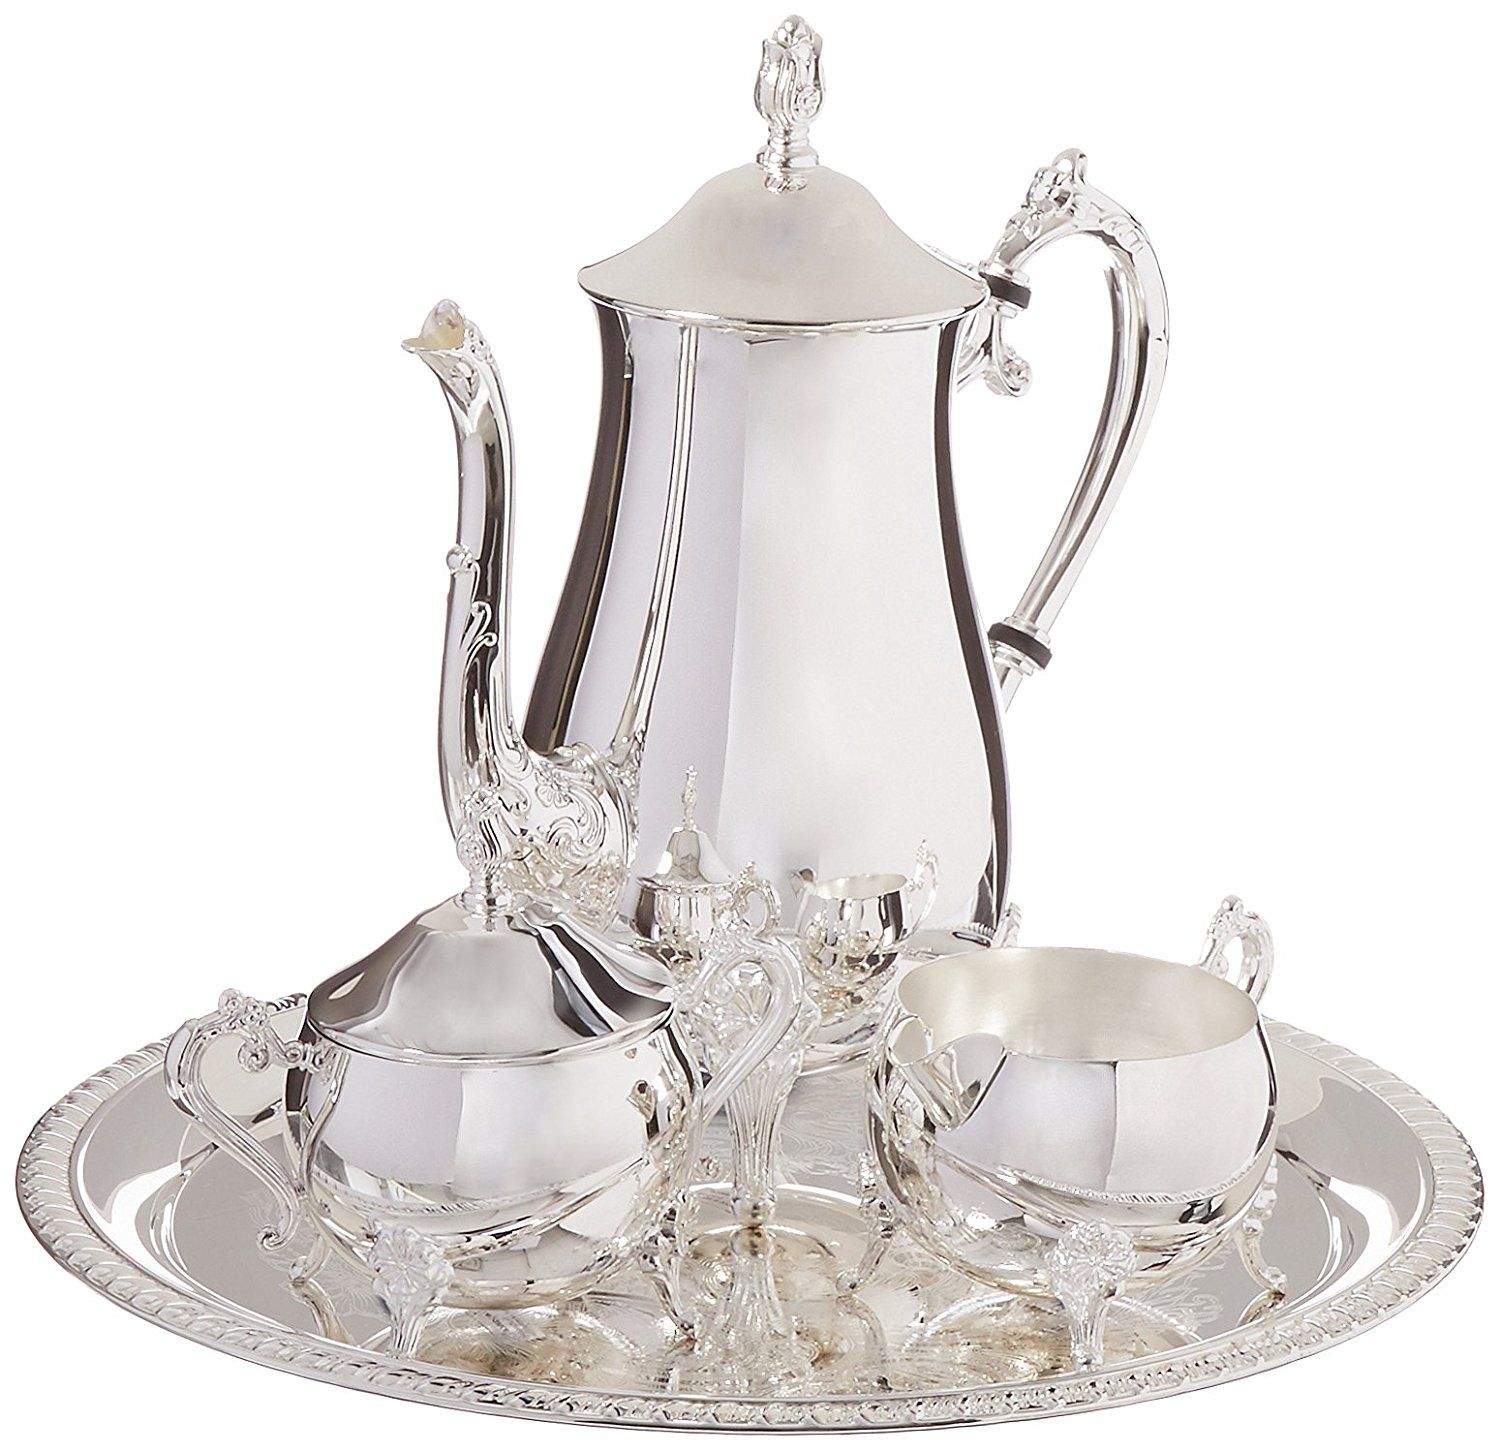 4 Piece Elegance Silver 8917 Hotel Collection Coffee Service Set